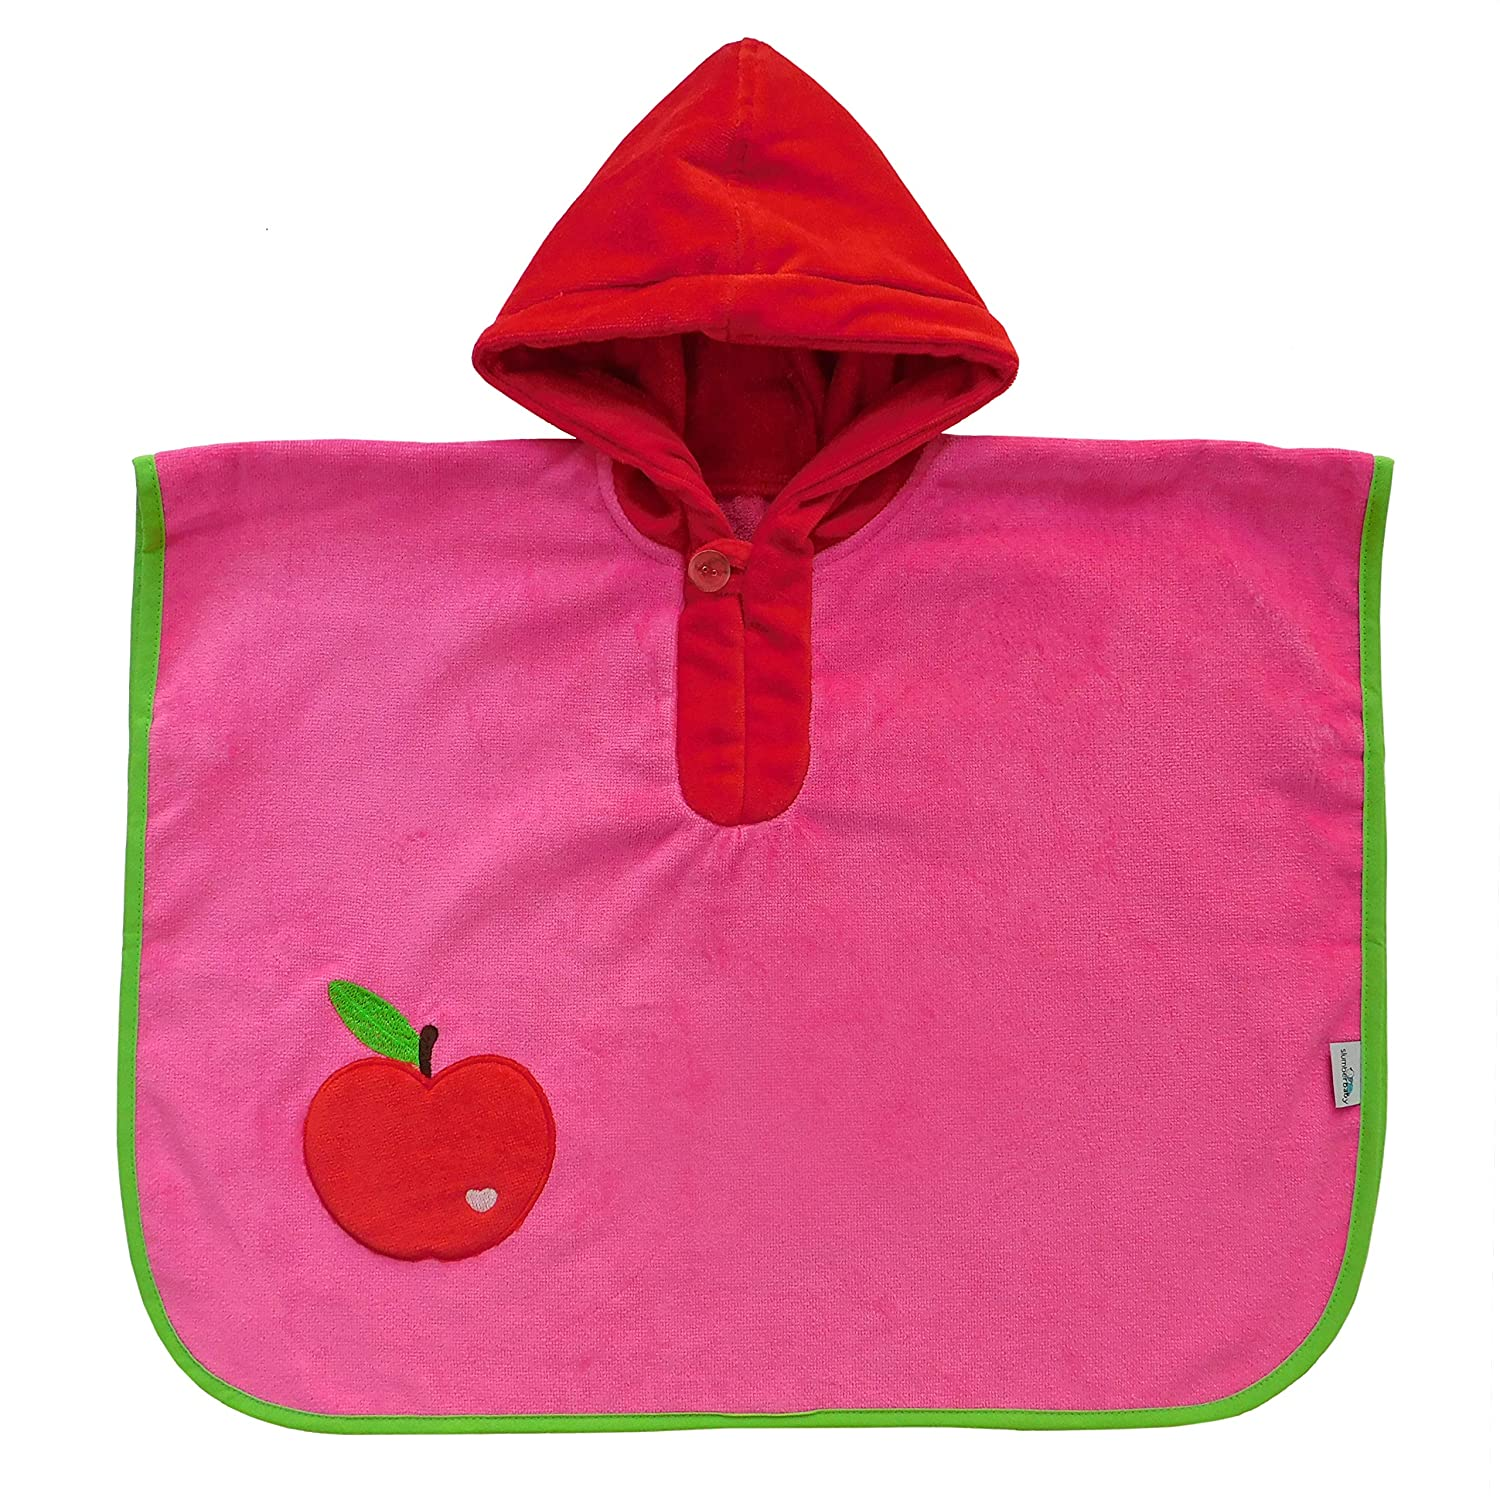 Slumbersac Baby Toddler Bath Poncho Towel Red Apple, 1-3 Years